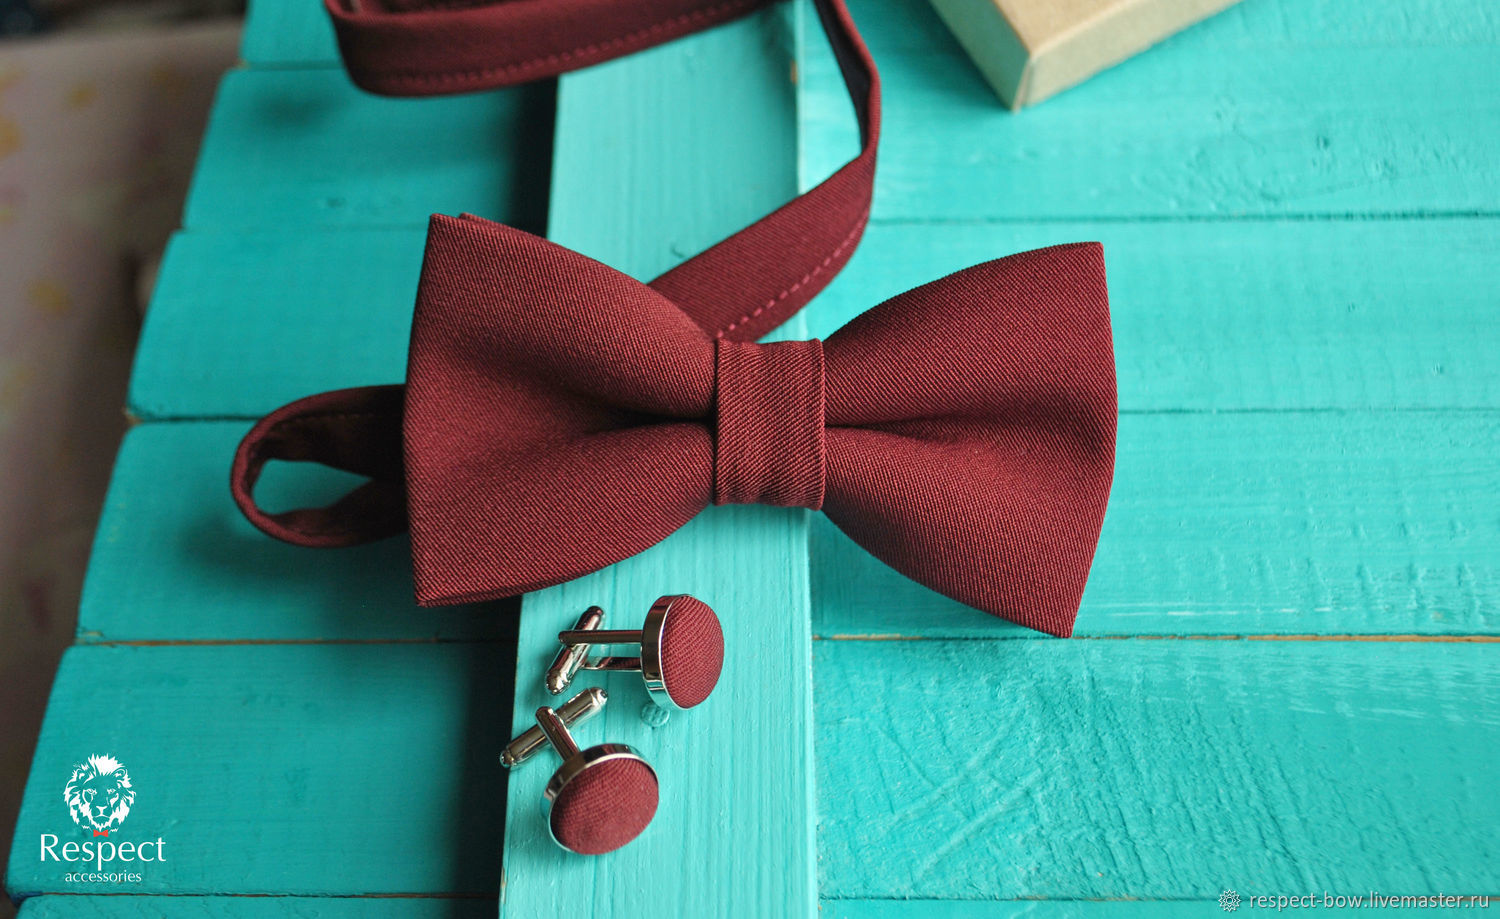 A Burgundy Bow Tie Marsala Complete With Stylish Men S Shponkami In The Same